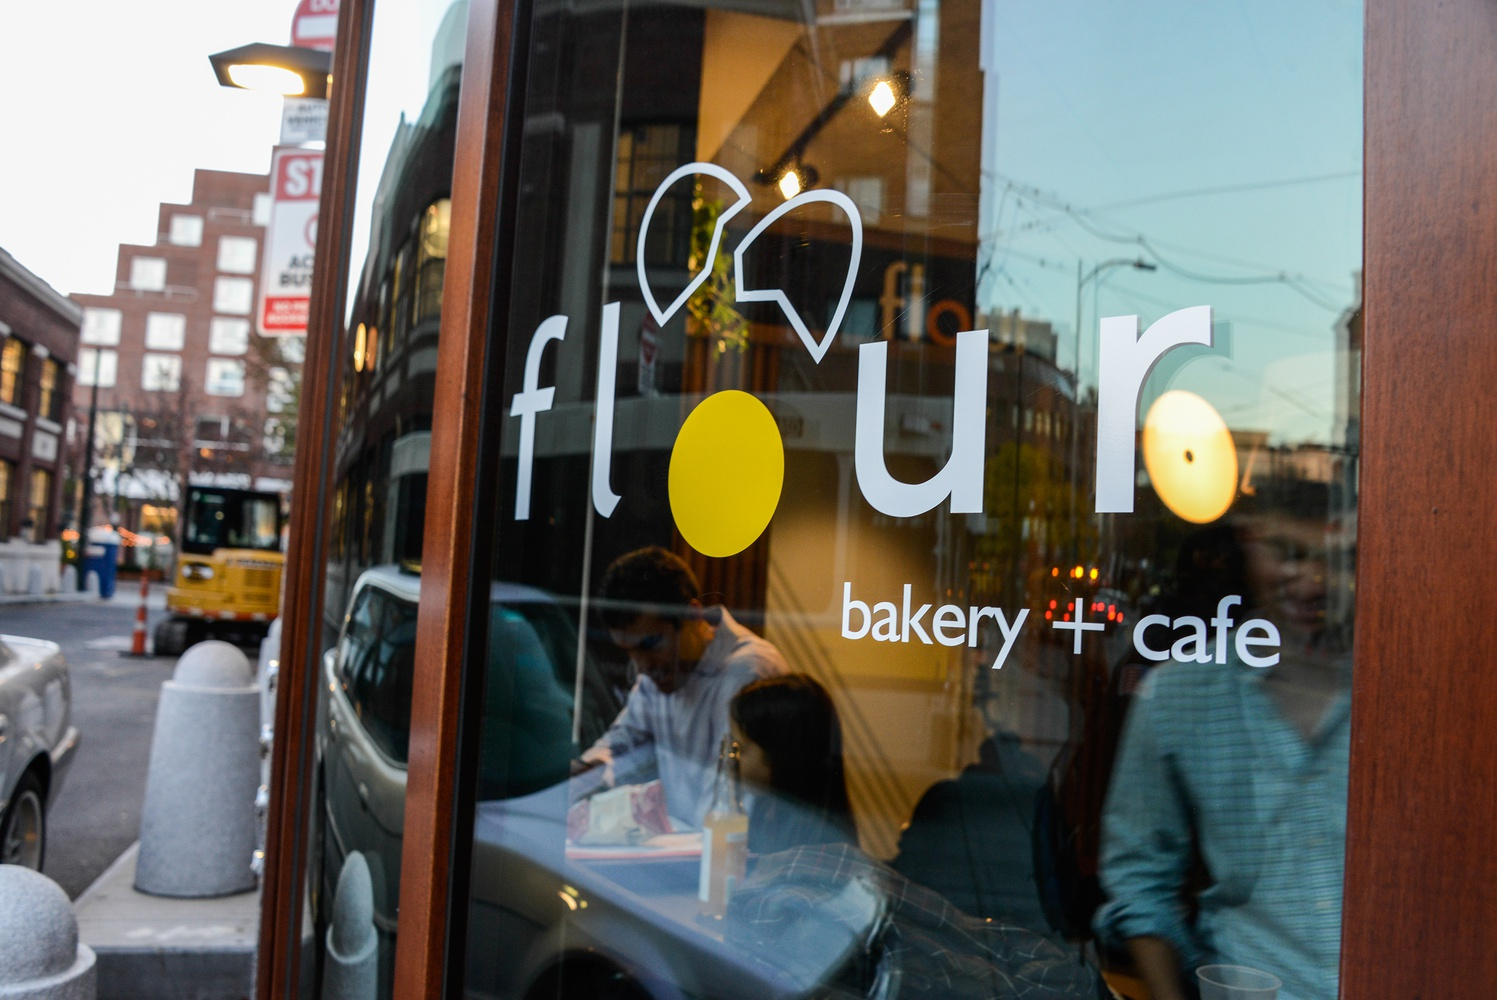 Flour Bakery opened early this month in Harvard Square.